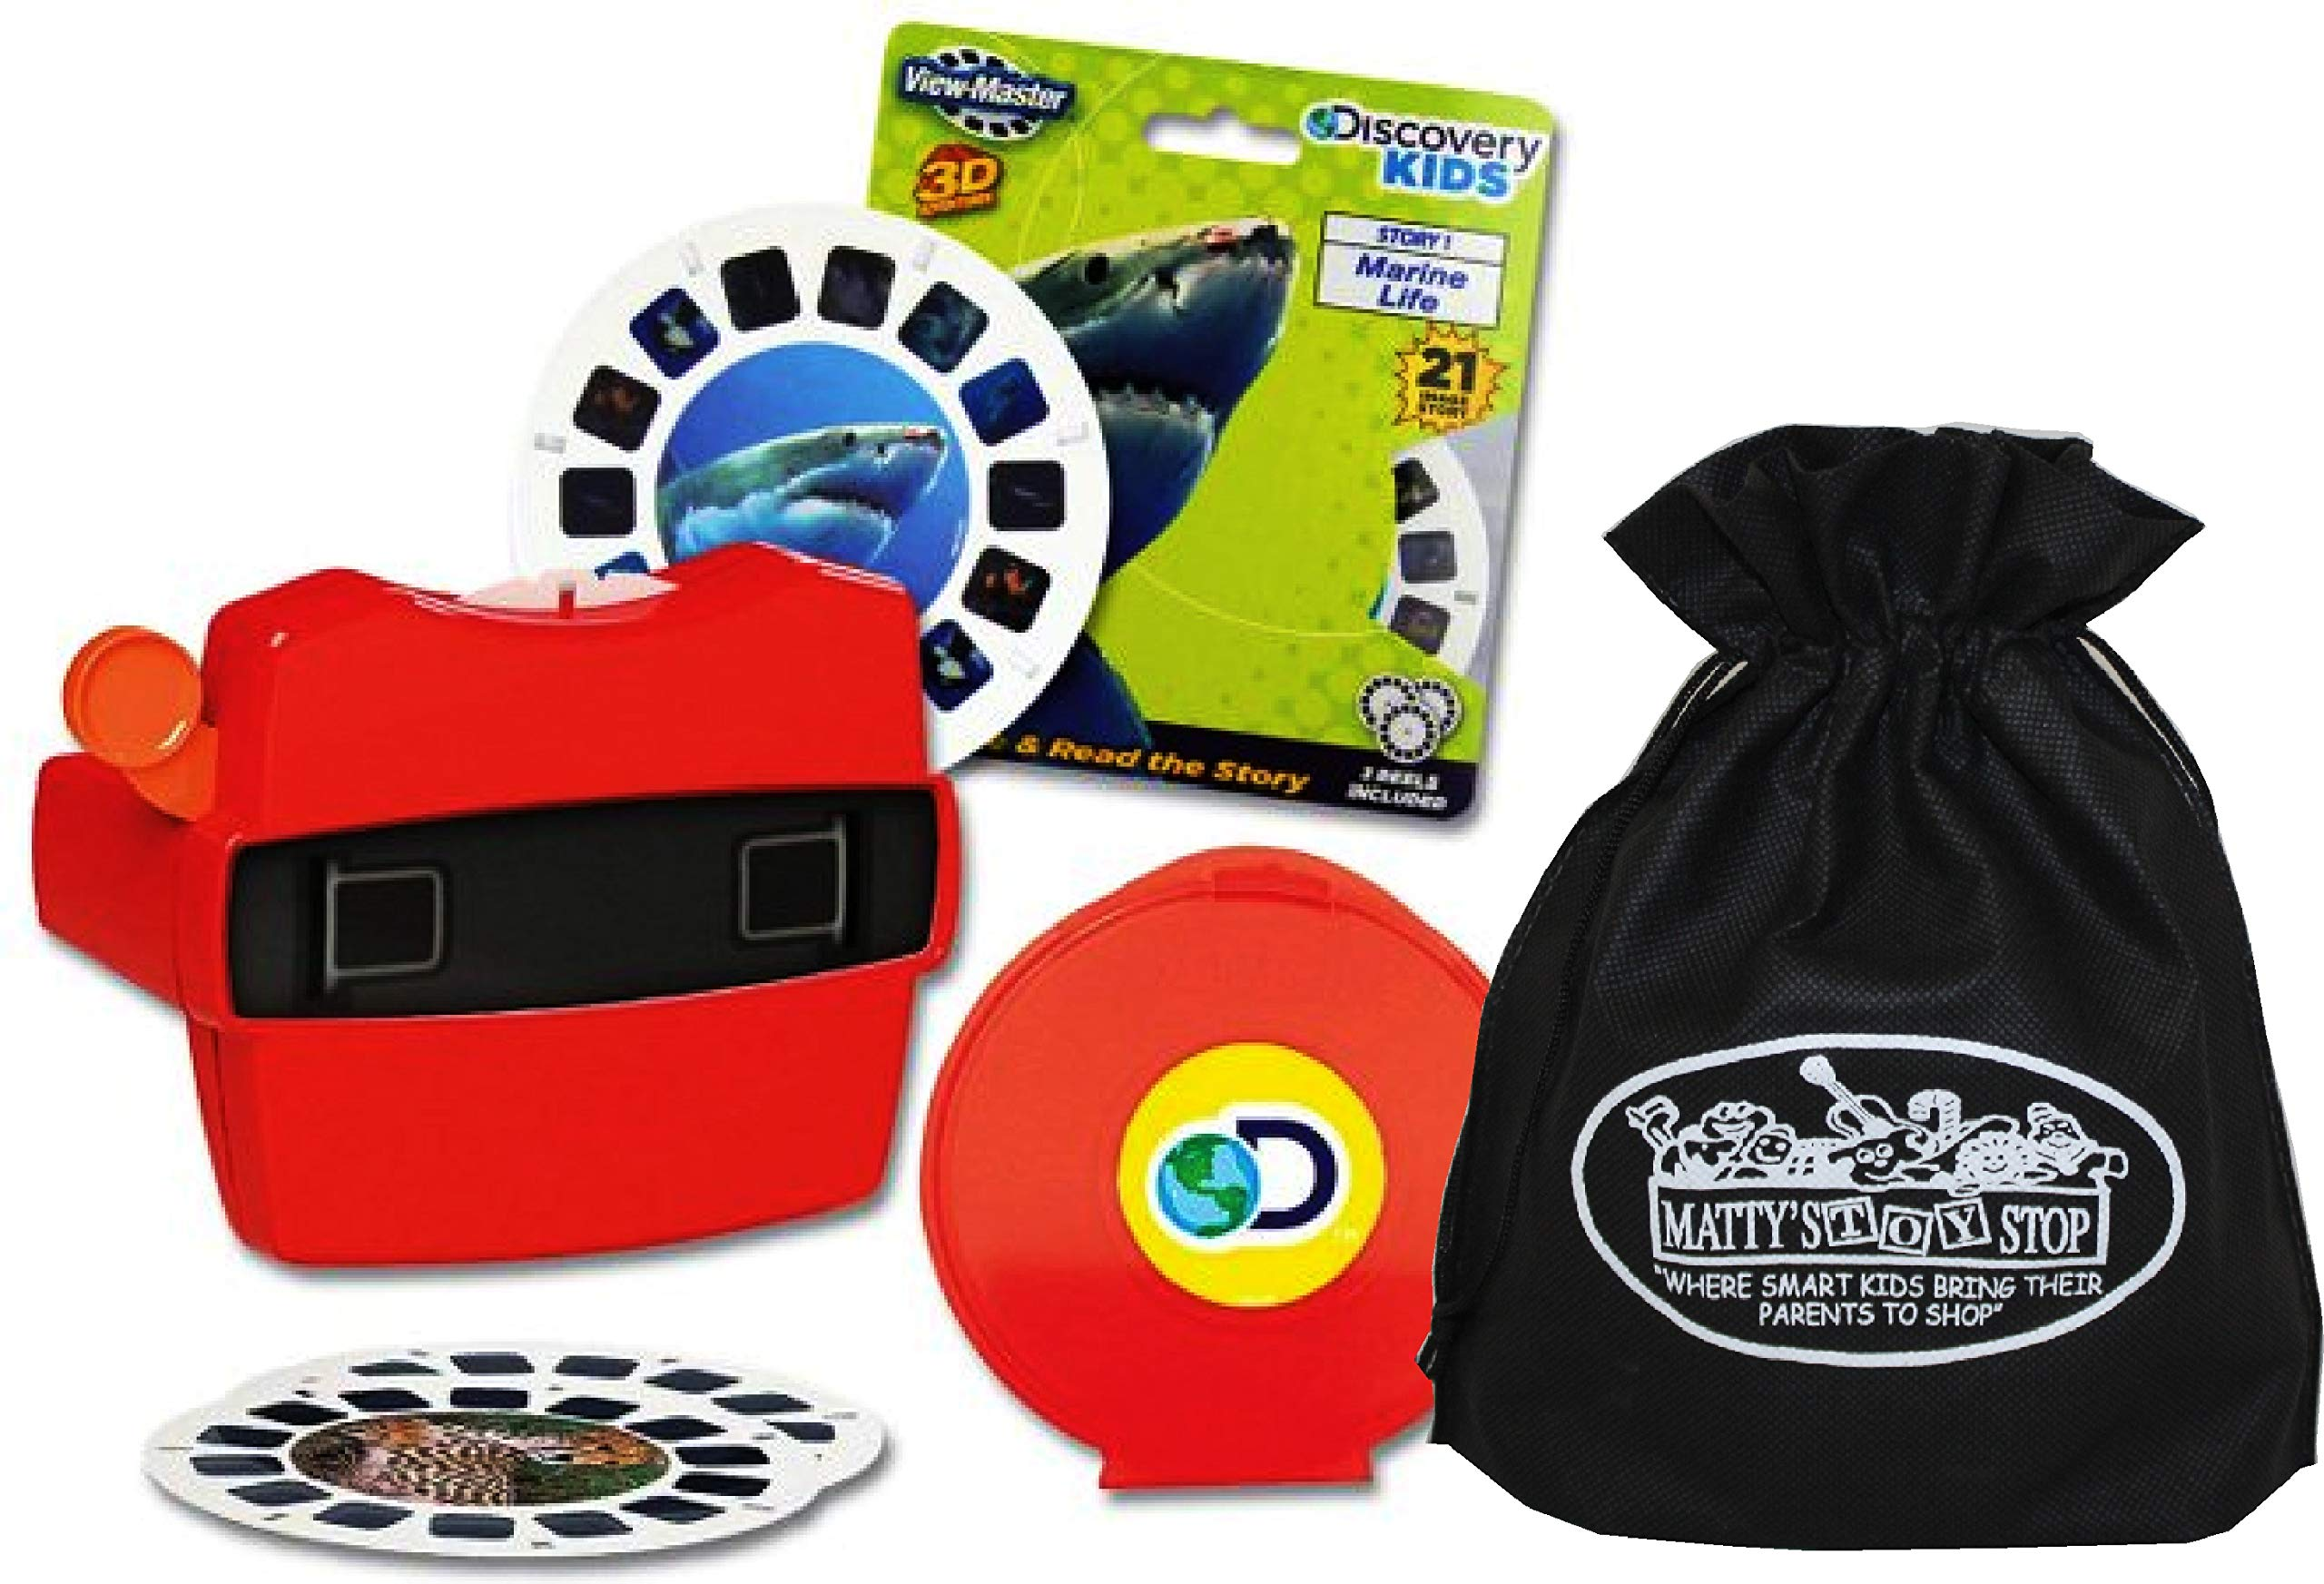 View Master Classic 3D Adventures Discovery Boxed Set & Marine Life Refill Gift Set Bundle with Bonus Matty's Toy Stop Storage Bag - 2 Pack by View Master (Image #1)